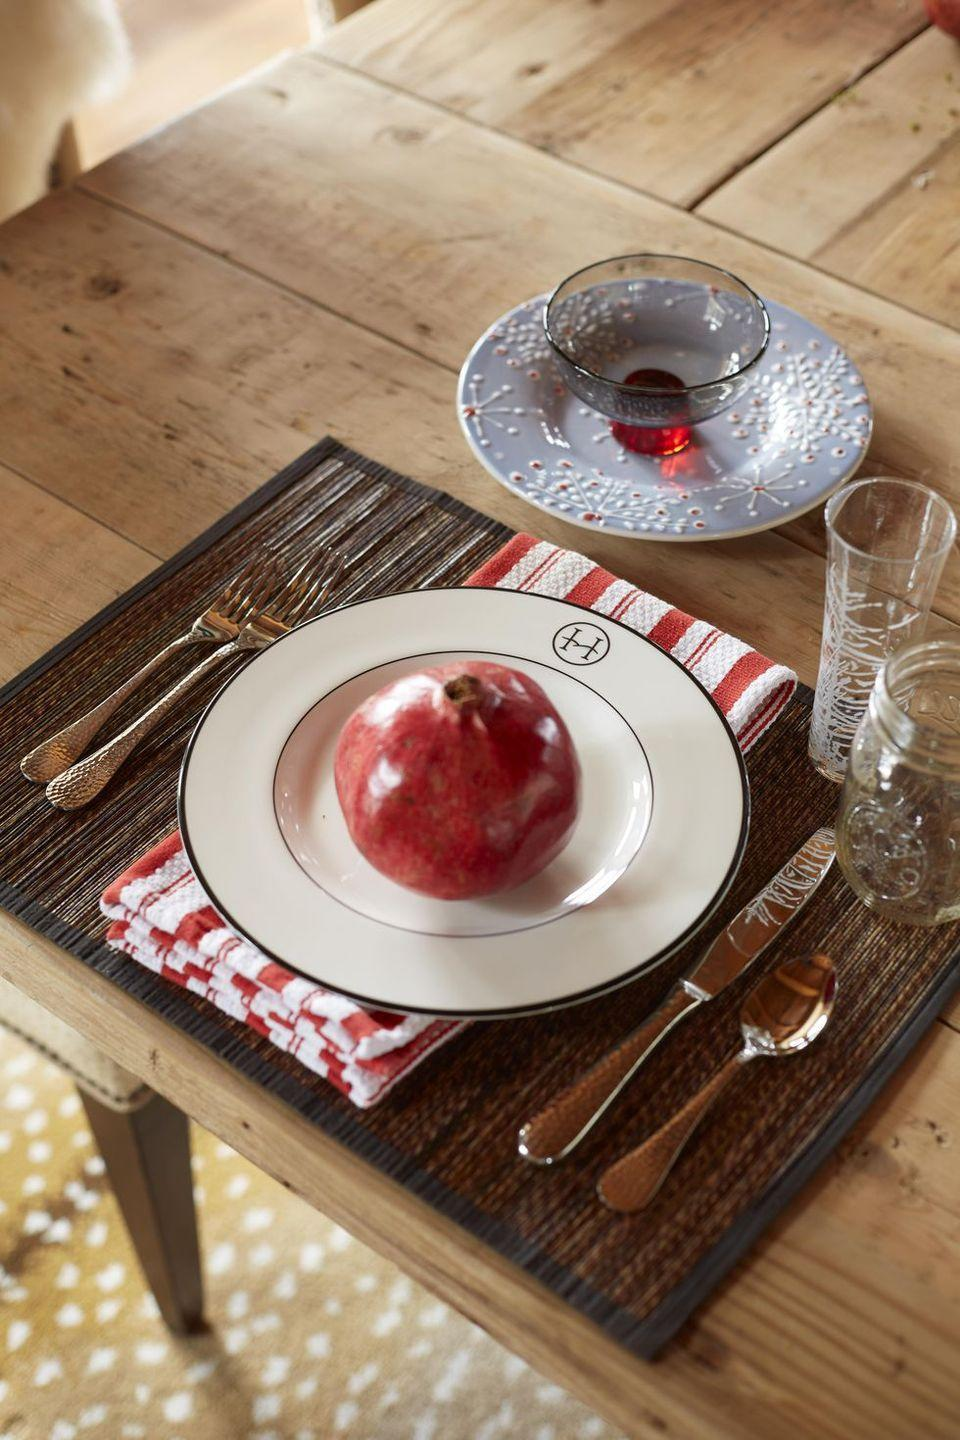 """<p>The end of fall is the peak season for pomegranates, so why not incorporate the fruit into a simple, yet elegant, place setting? Interior designer <a href=""""https://janiemolster.com/"""" rel=""""nofollow noopener"""" target=""""_blank"""" data-ylk=""""slk:Janie Molster"""" class=""""link rapid-noclick-resp"""">Janie Molster</a> paired the fruit with a simple white plate and striped cloth napkin for a perfect fall dining table look. </p>"""